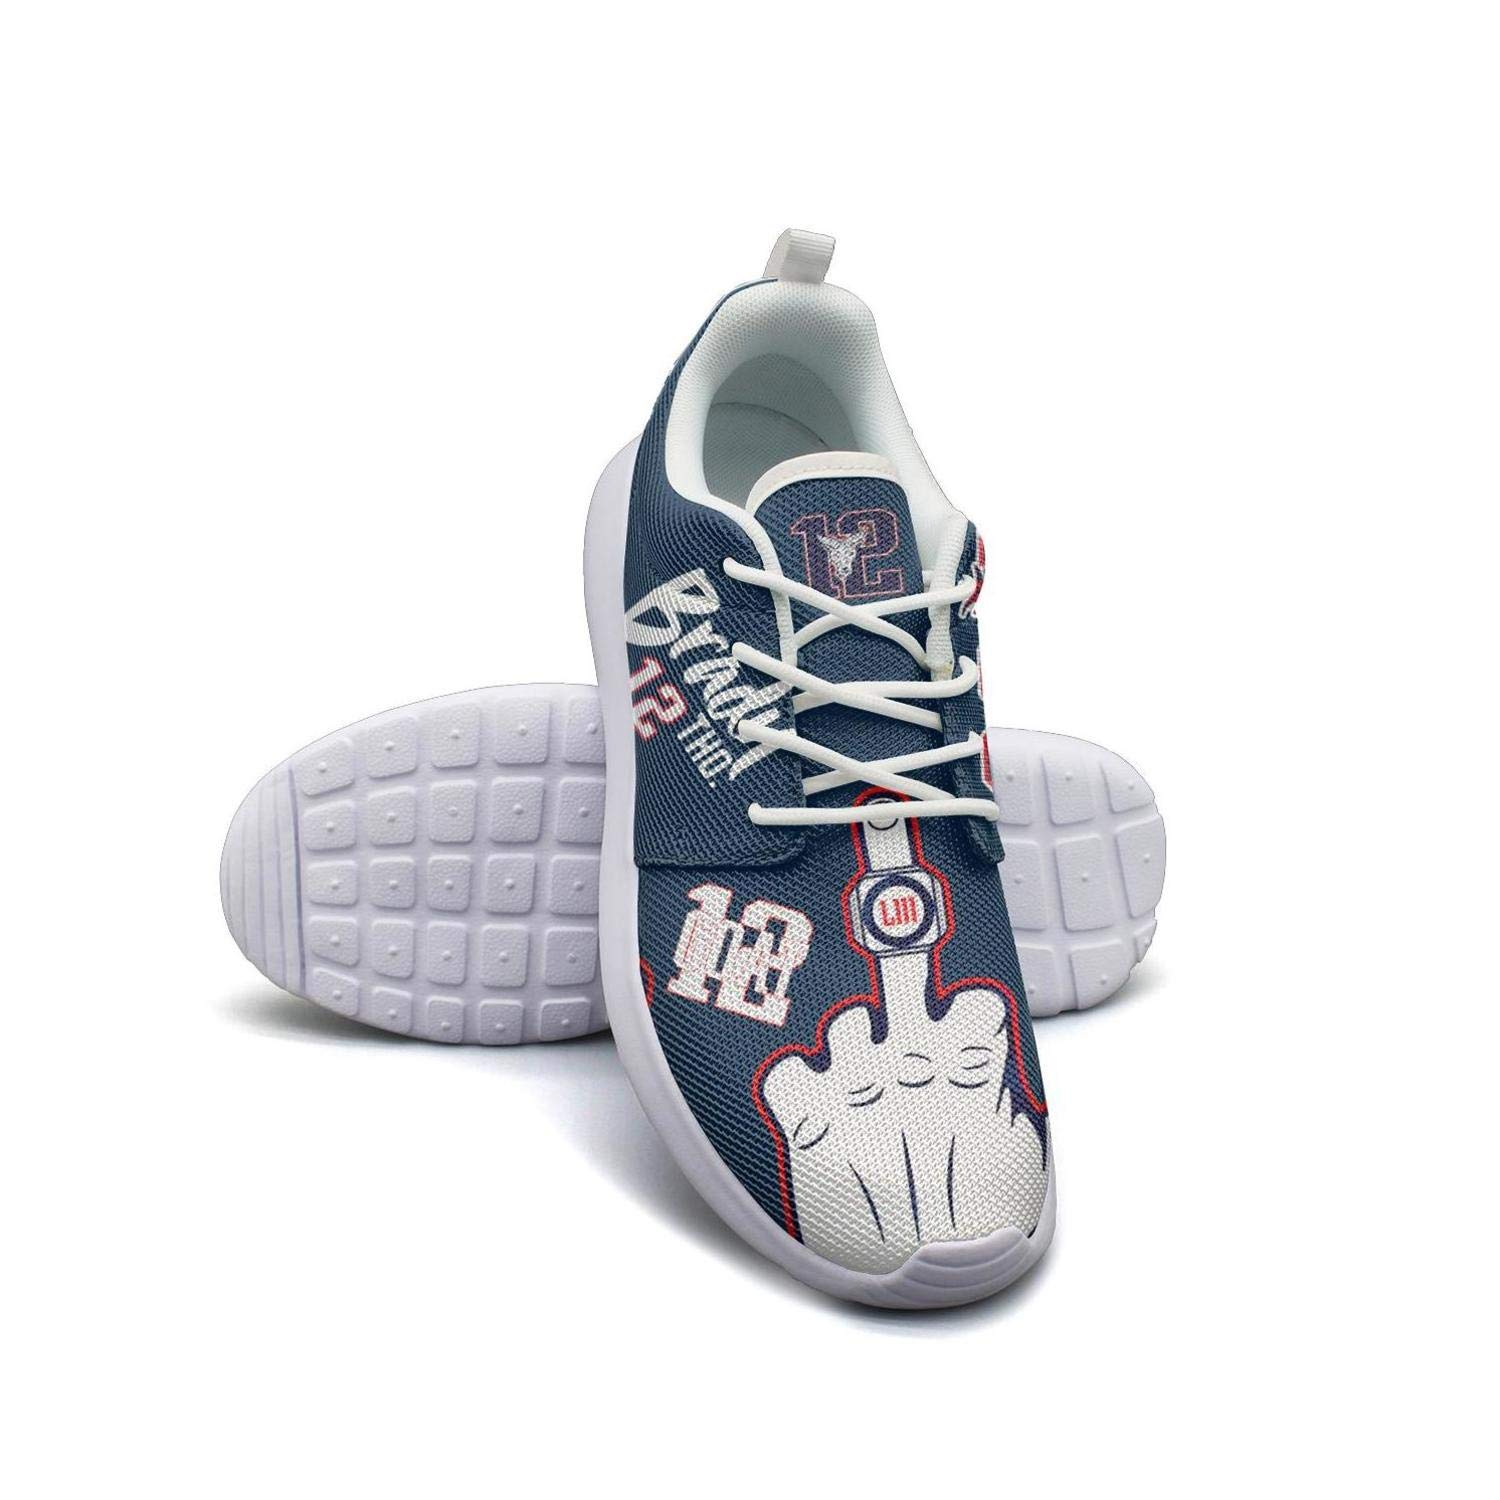 Casual Sneakers for Women Football-MVP-Tom-Goat-12 Sports Wear-Resistant Mesh Best Running Shoes